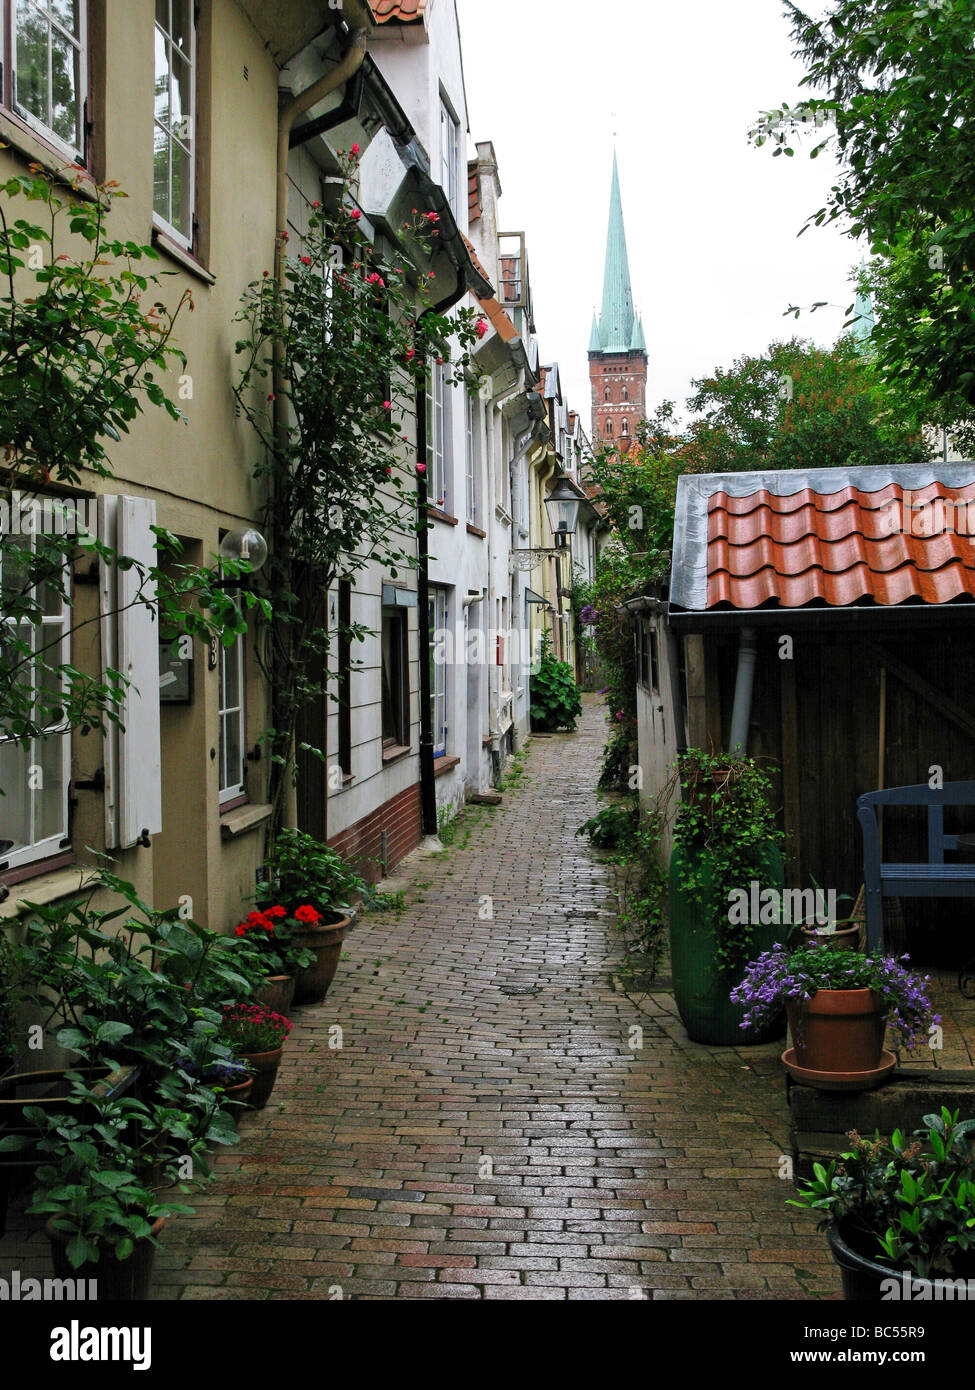 Schwans Hof Lane leading to the Church Steeple of St Petri Lubeck Germany - Stock Image